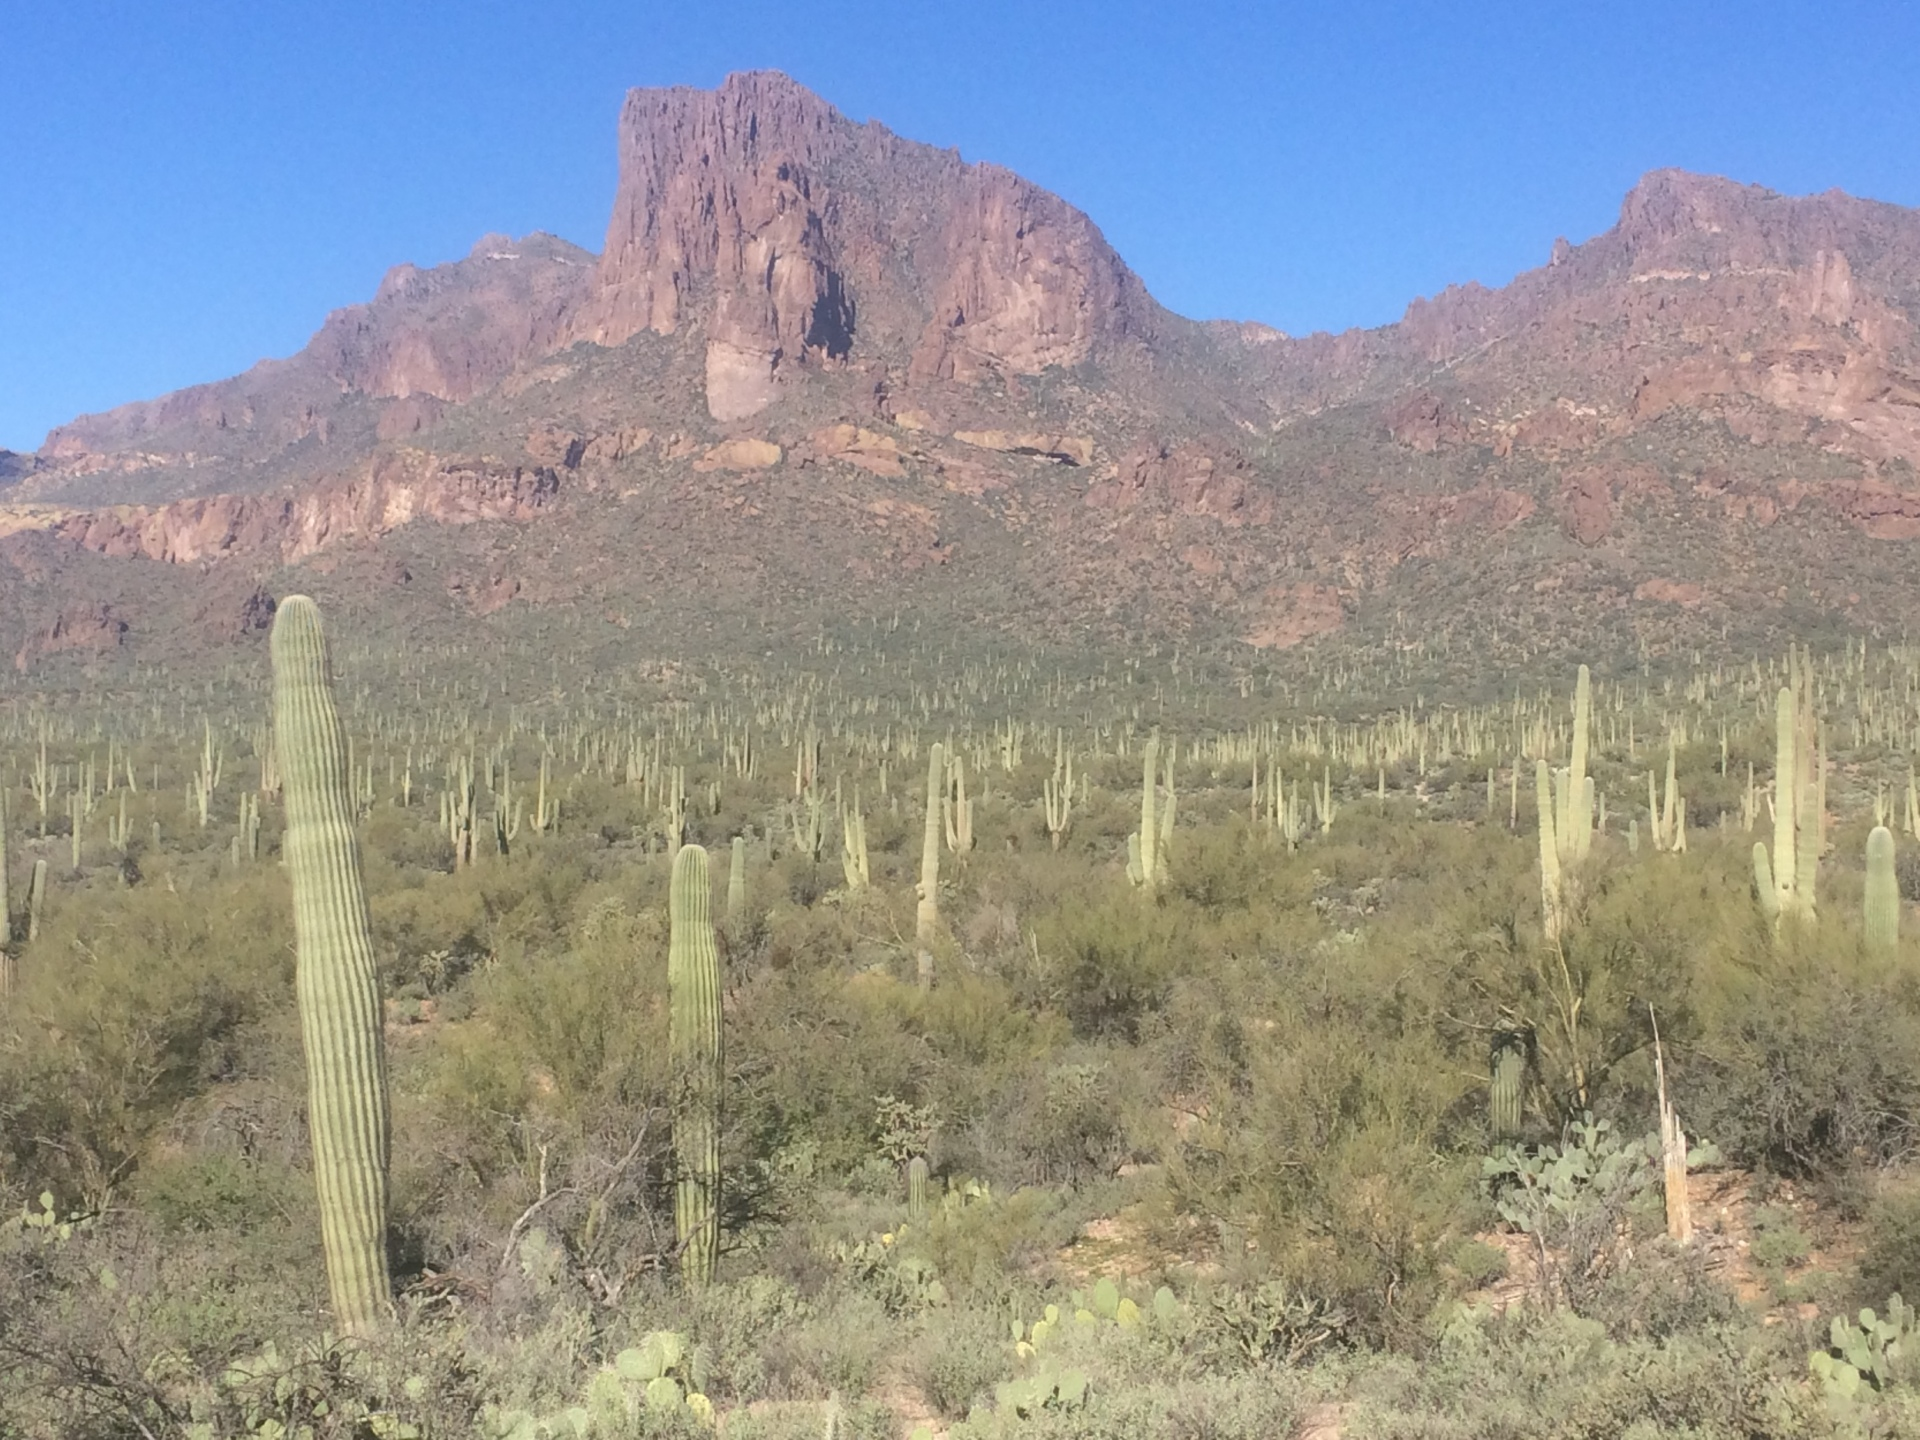 The Superstition Mountains:  Legends, History, and Lost Gold Mines